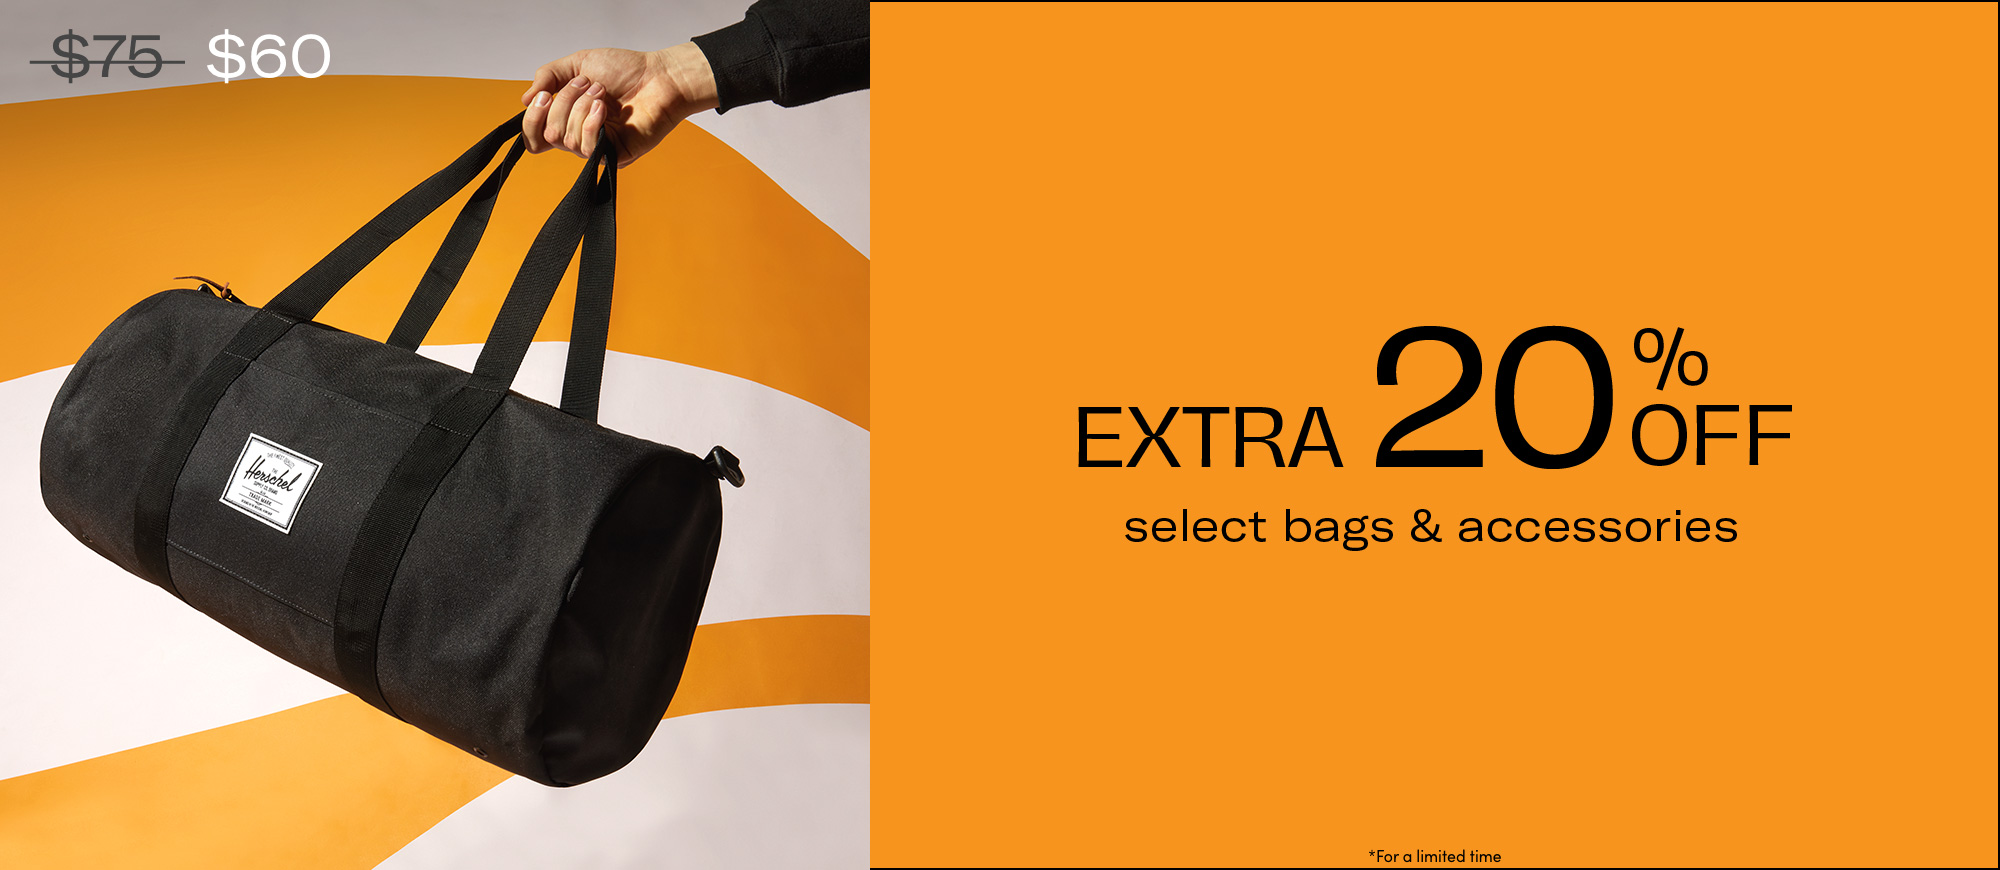 20% OFF BAGS AND ACCESSORIES